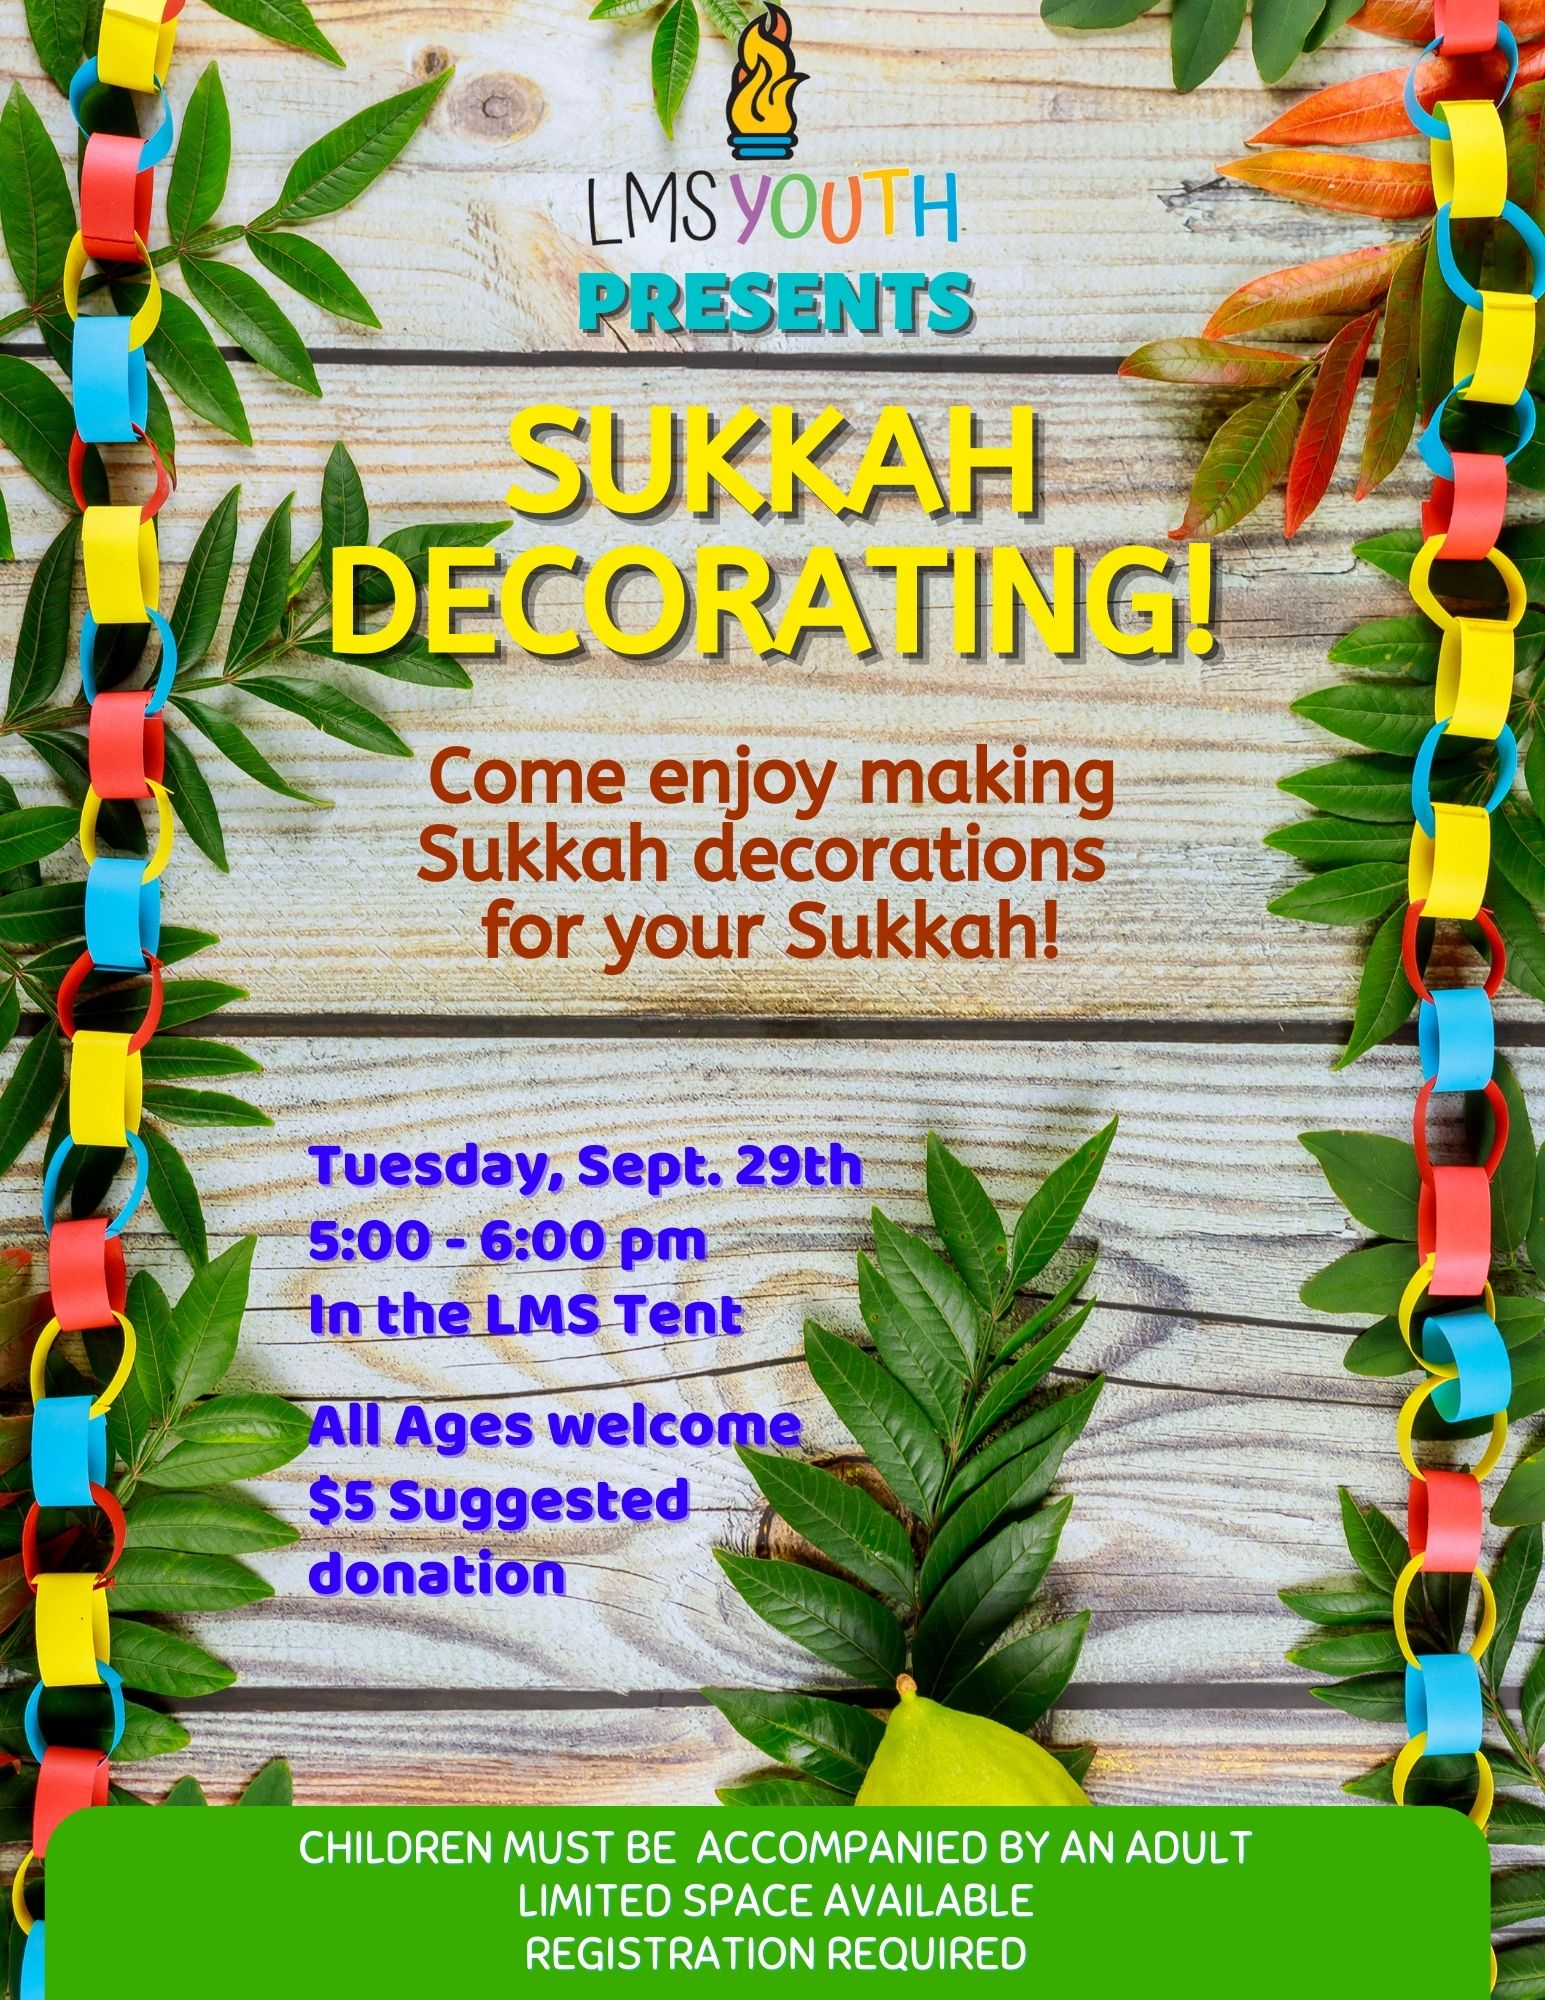 """</a>                                                                                                                                                                                      <a href=""""https://www.lowermerionsynagogue.org/form/sukkah-decorating"""" class=""""slider_link""""                             target="""""""">                             Click Here To Register                            </a>"""